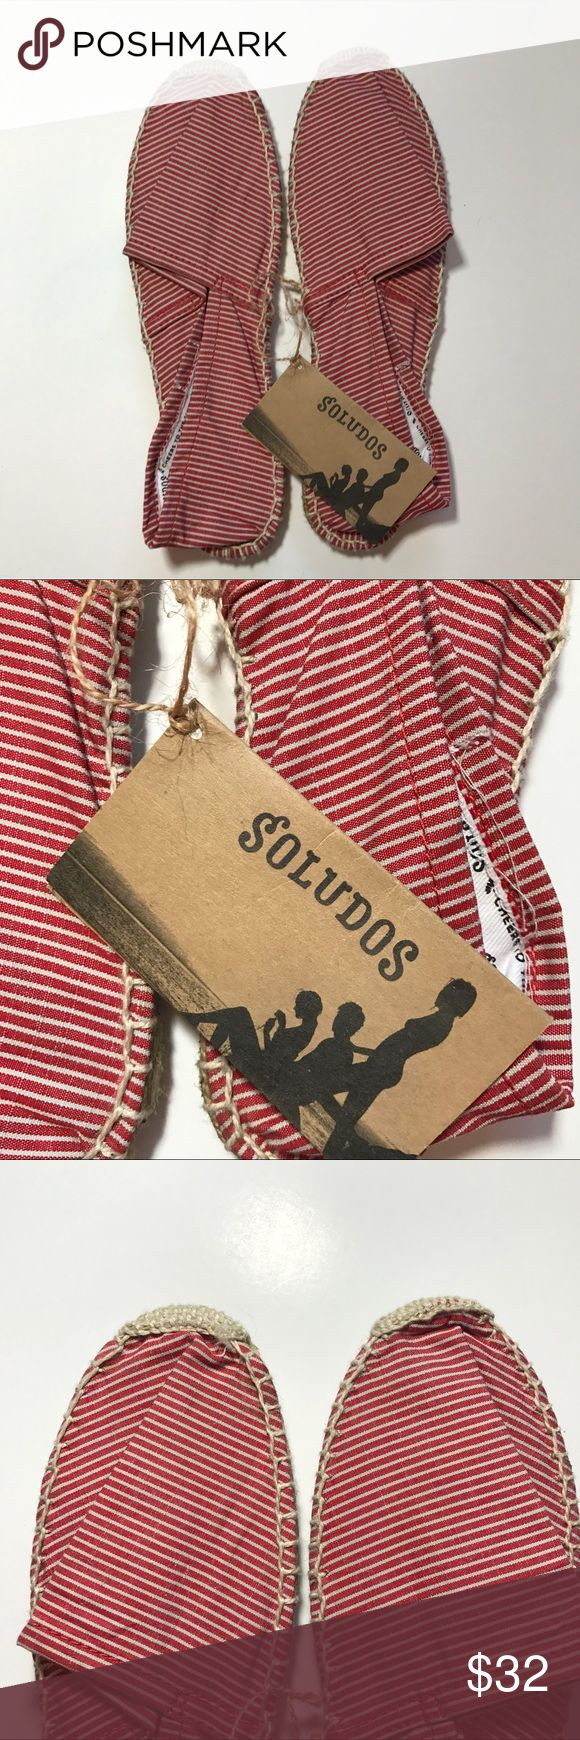 NWT SOLUDOS - Red and White Stripe Dali Slipper Brand new with tags. Size 39. SOLUDOS red and white stripe espadrille slipper. Nautical and perfect for summer! Soludos Shoes Espadrilles